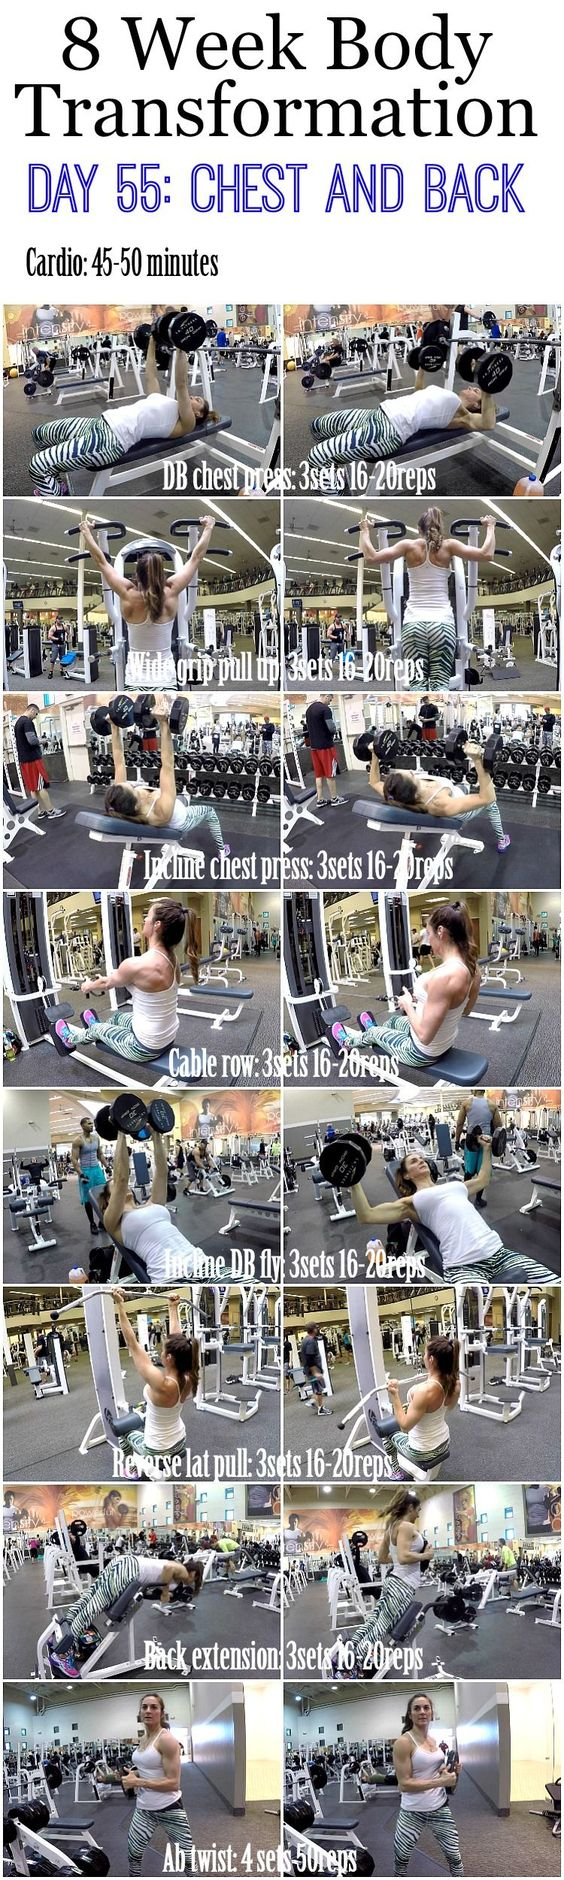 8 Week Body Transformation: Day 55 CHEST and BACK